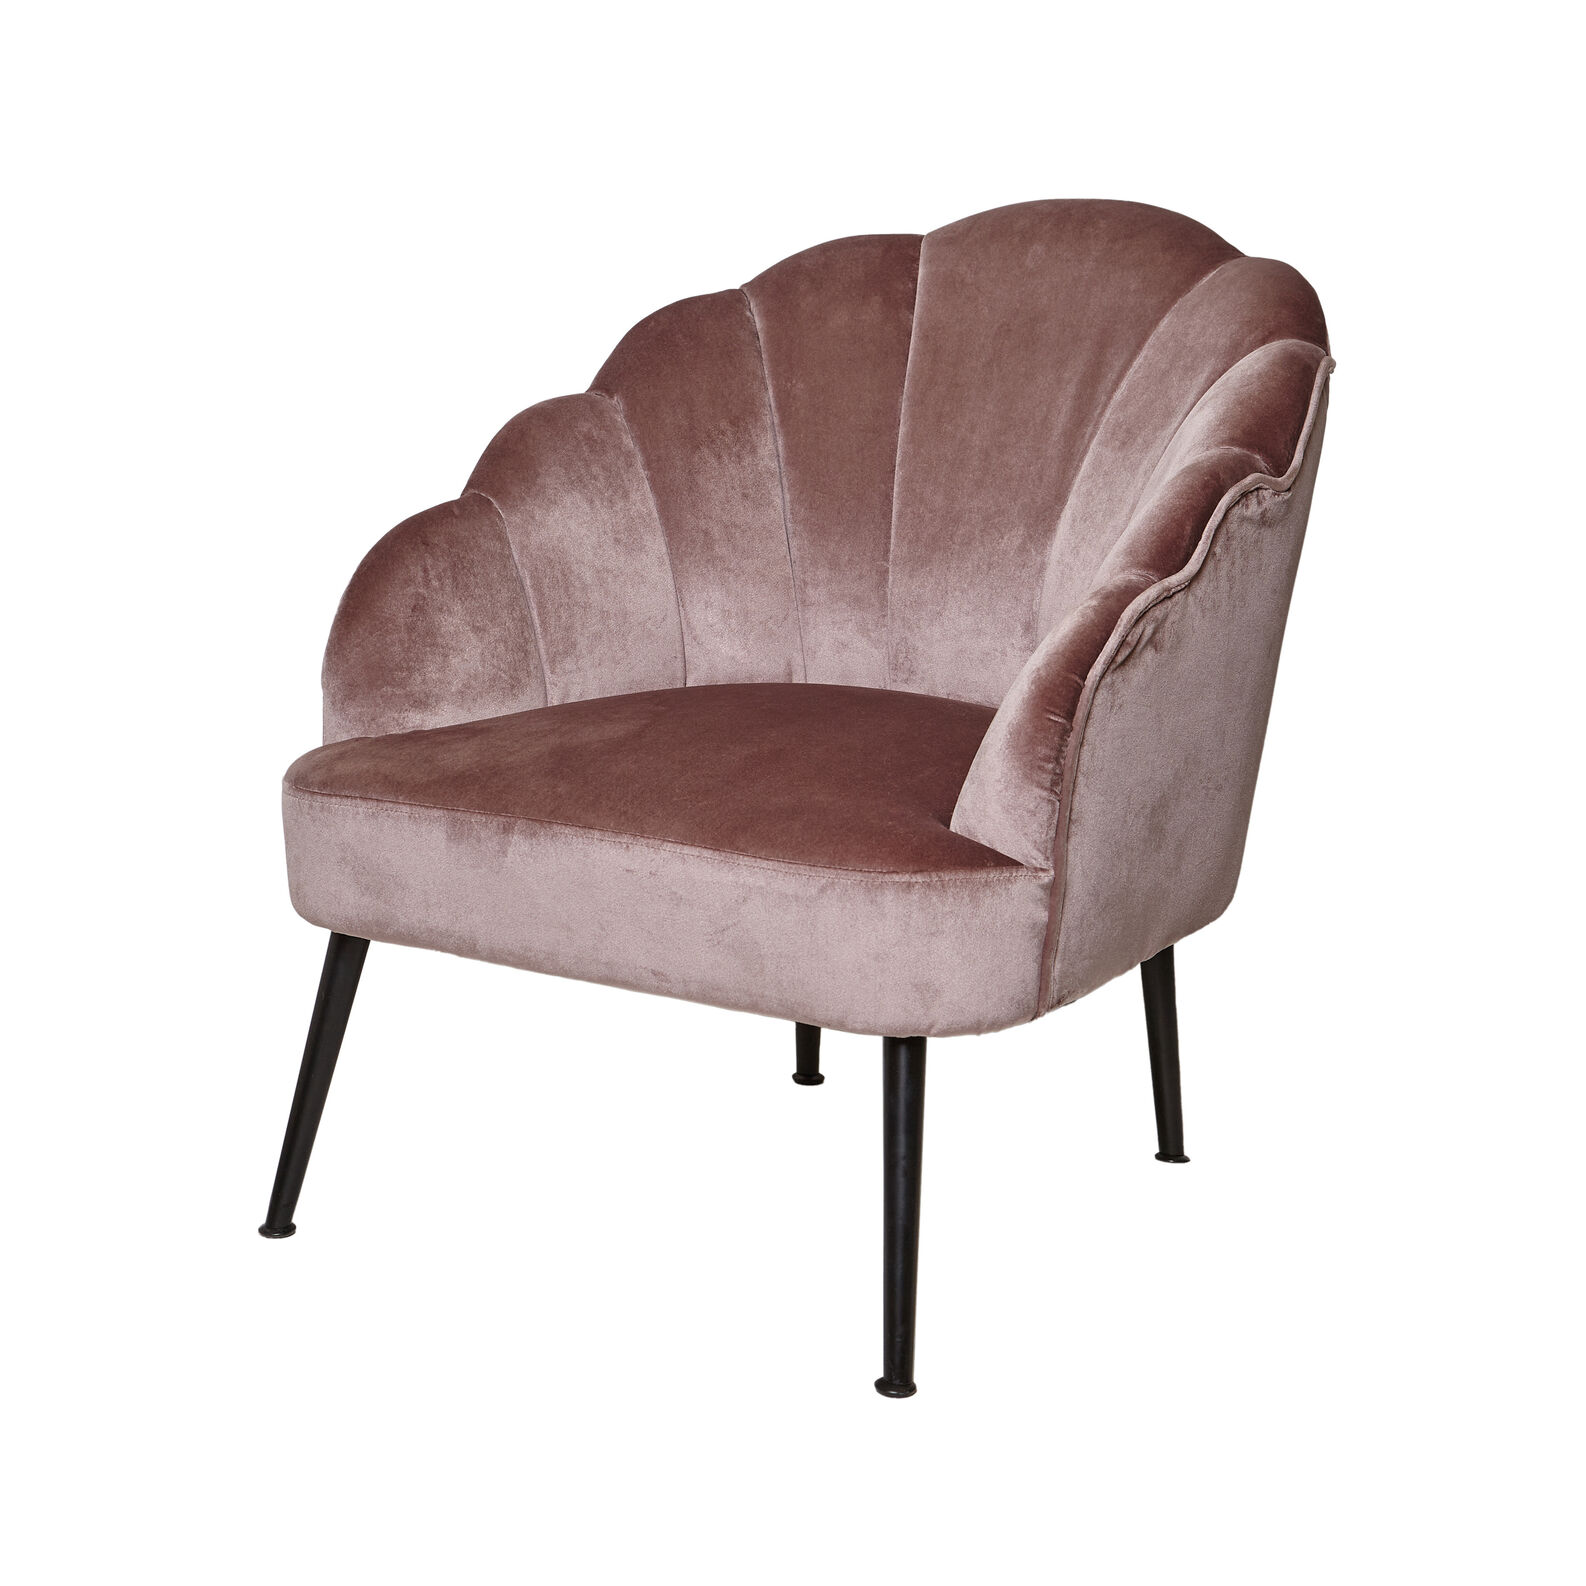 Rose velvet armchair